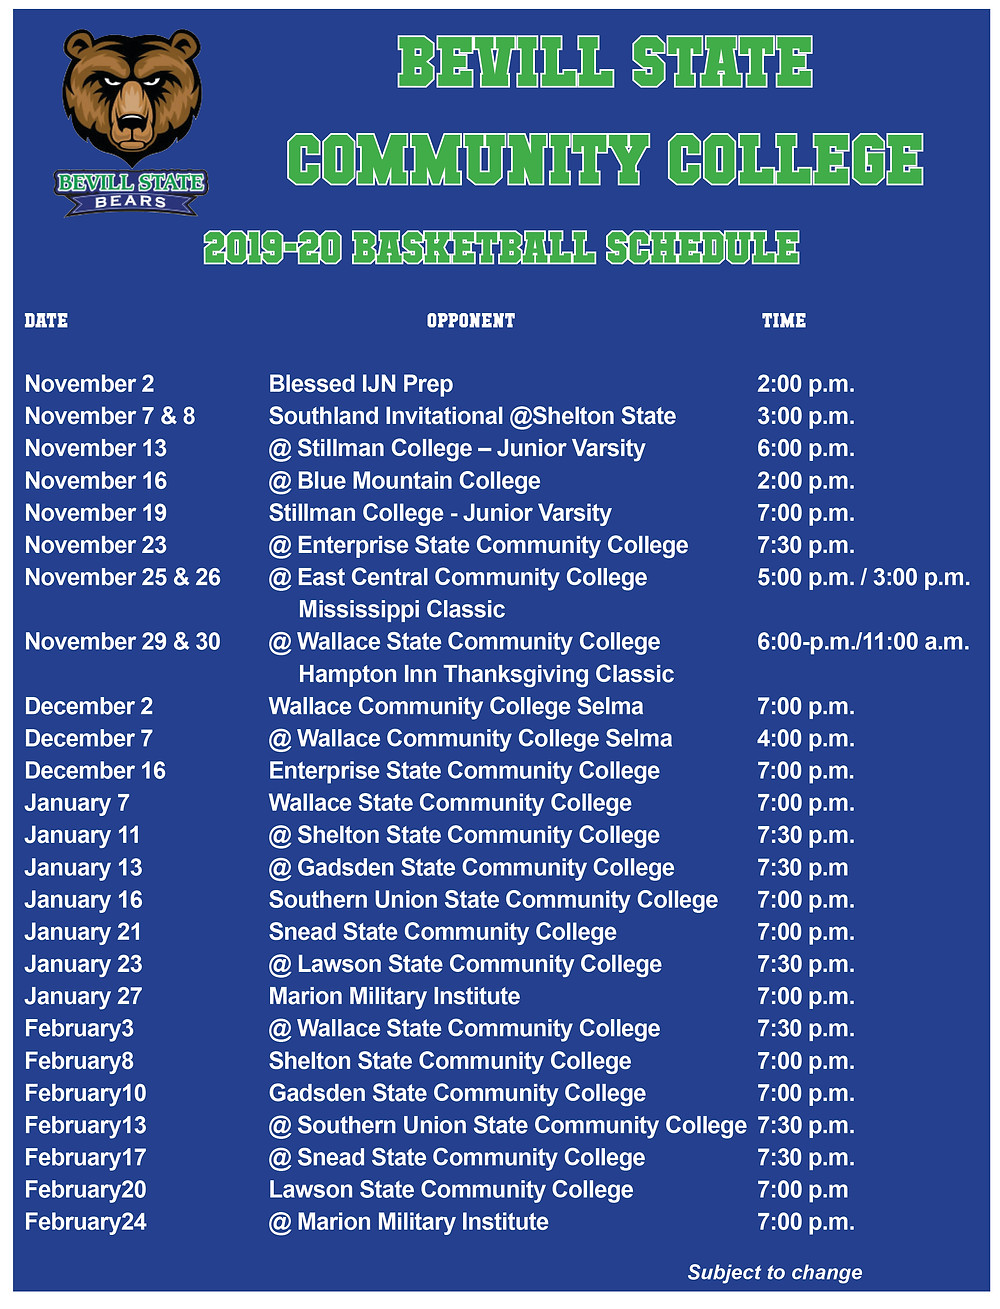 Bevill State Basketball Schedule 2019-2020